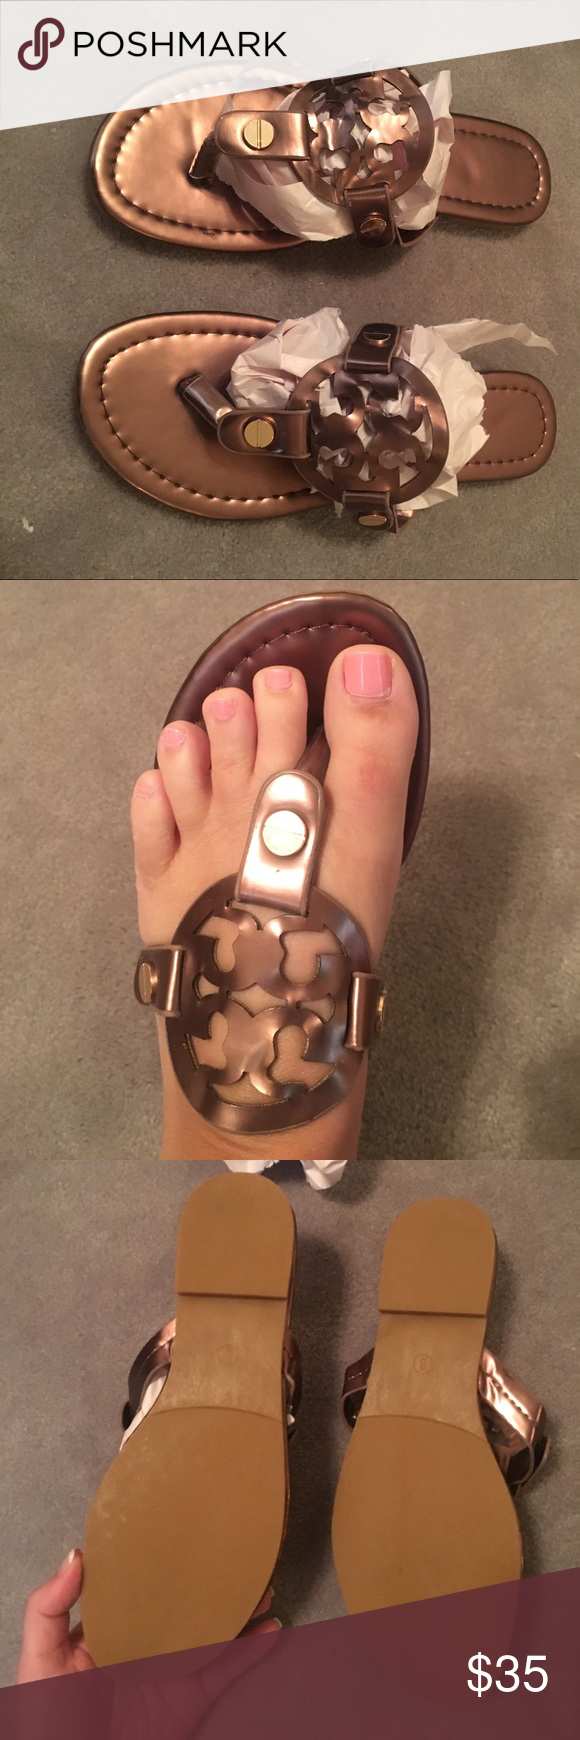 9fedaceccddd8d Tory burch miller sandals Price reflects authenticity. Great pair of inspired  sandals. Bronze Brown color Tory Burch Shoes Sandals